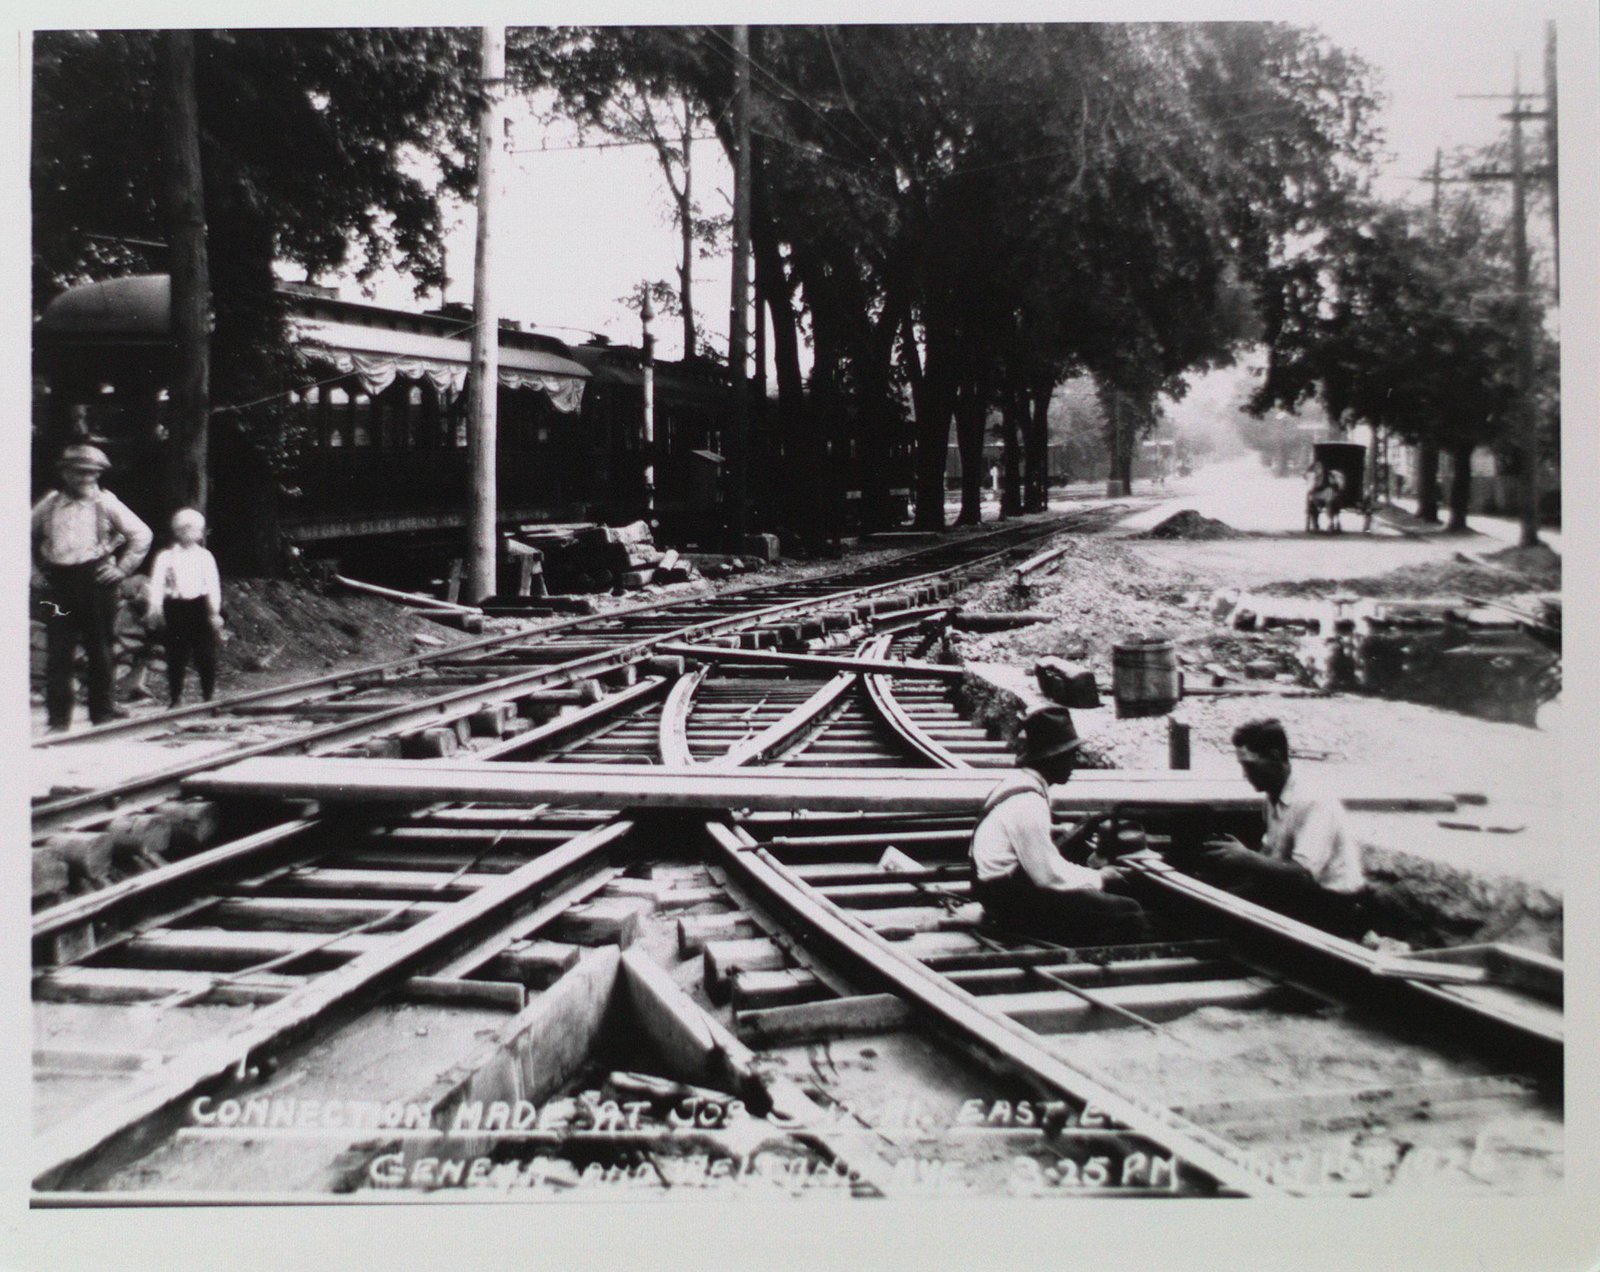 Railway Construction at Geneva Street and Welland Avenue